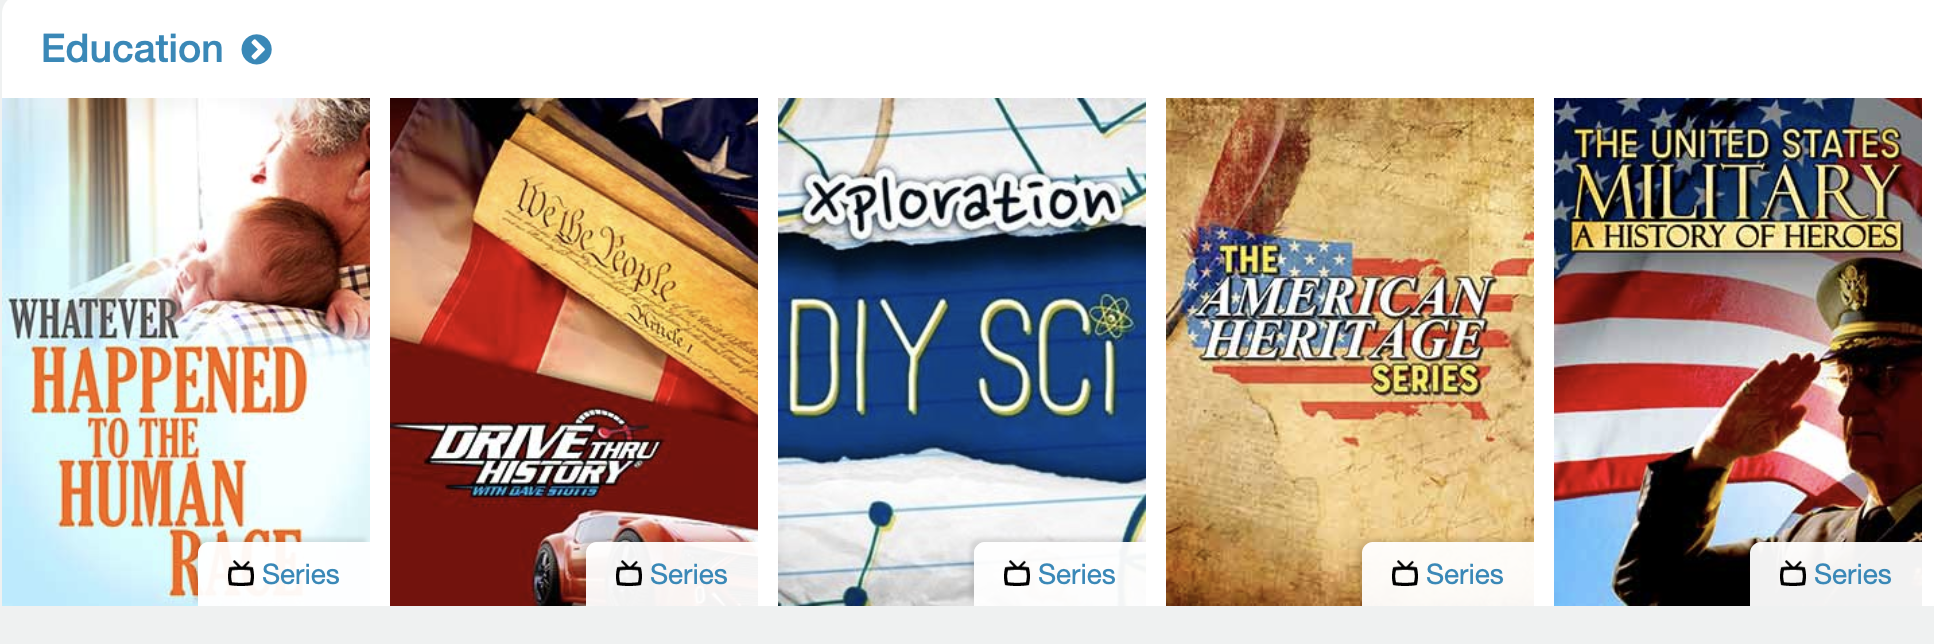 educational shows on Pure Flix